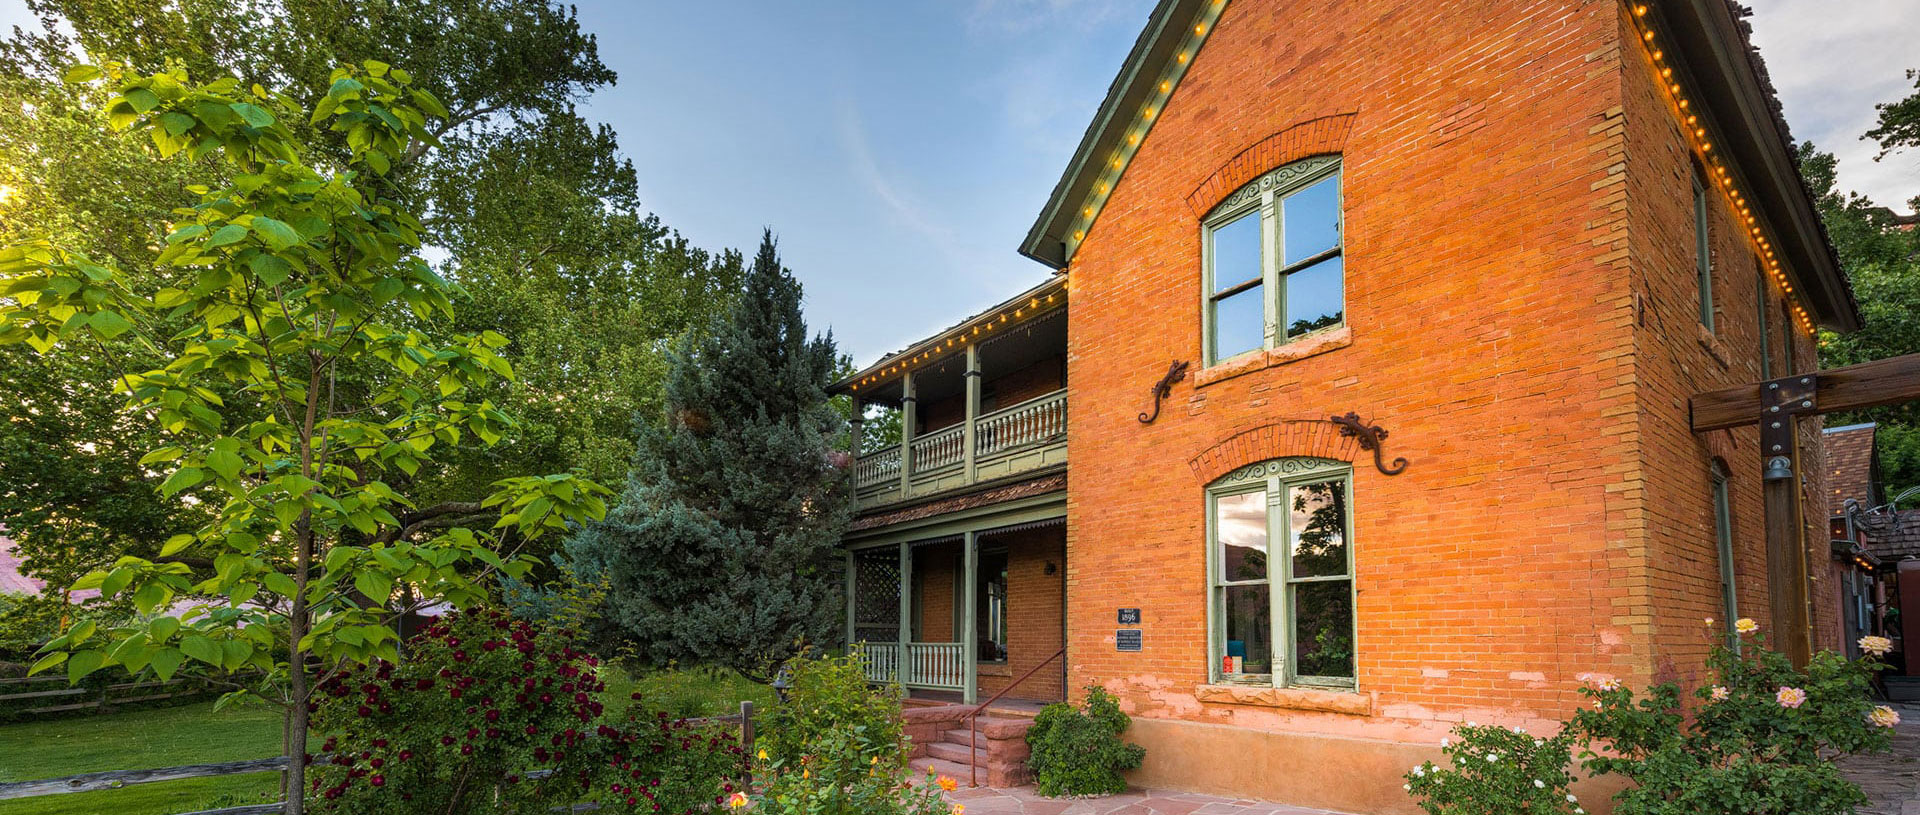 The historic ranch house on the Moab Springs property is a two storey faded red brick structure with a covered balcony on the upper floor overlooking lush vegetation.